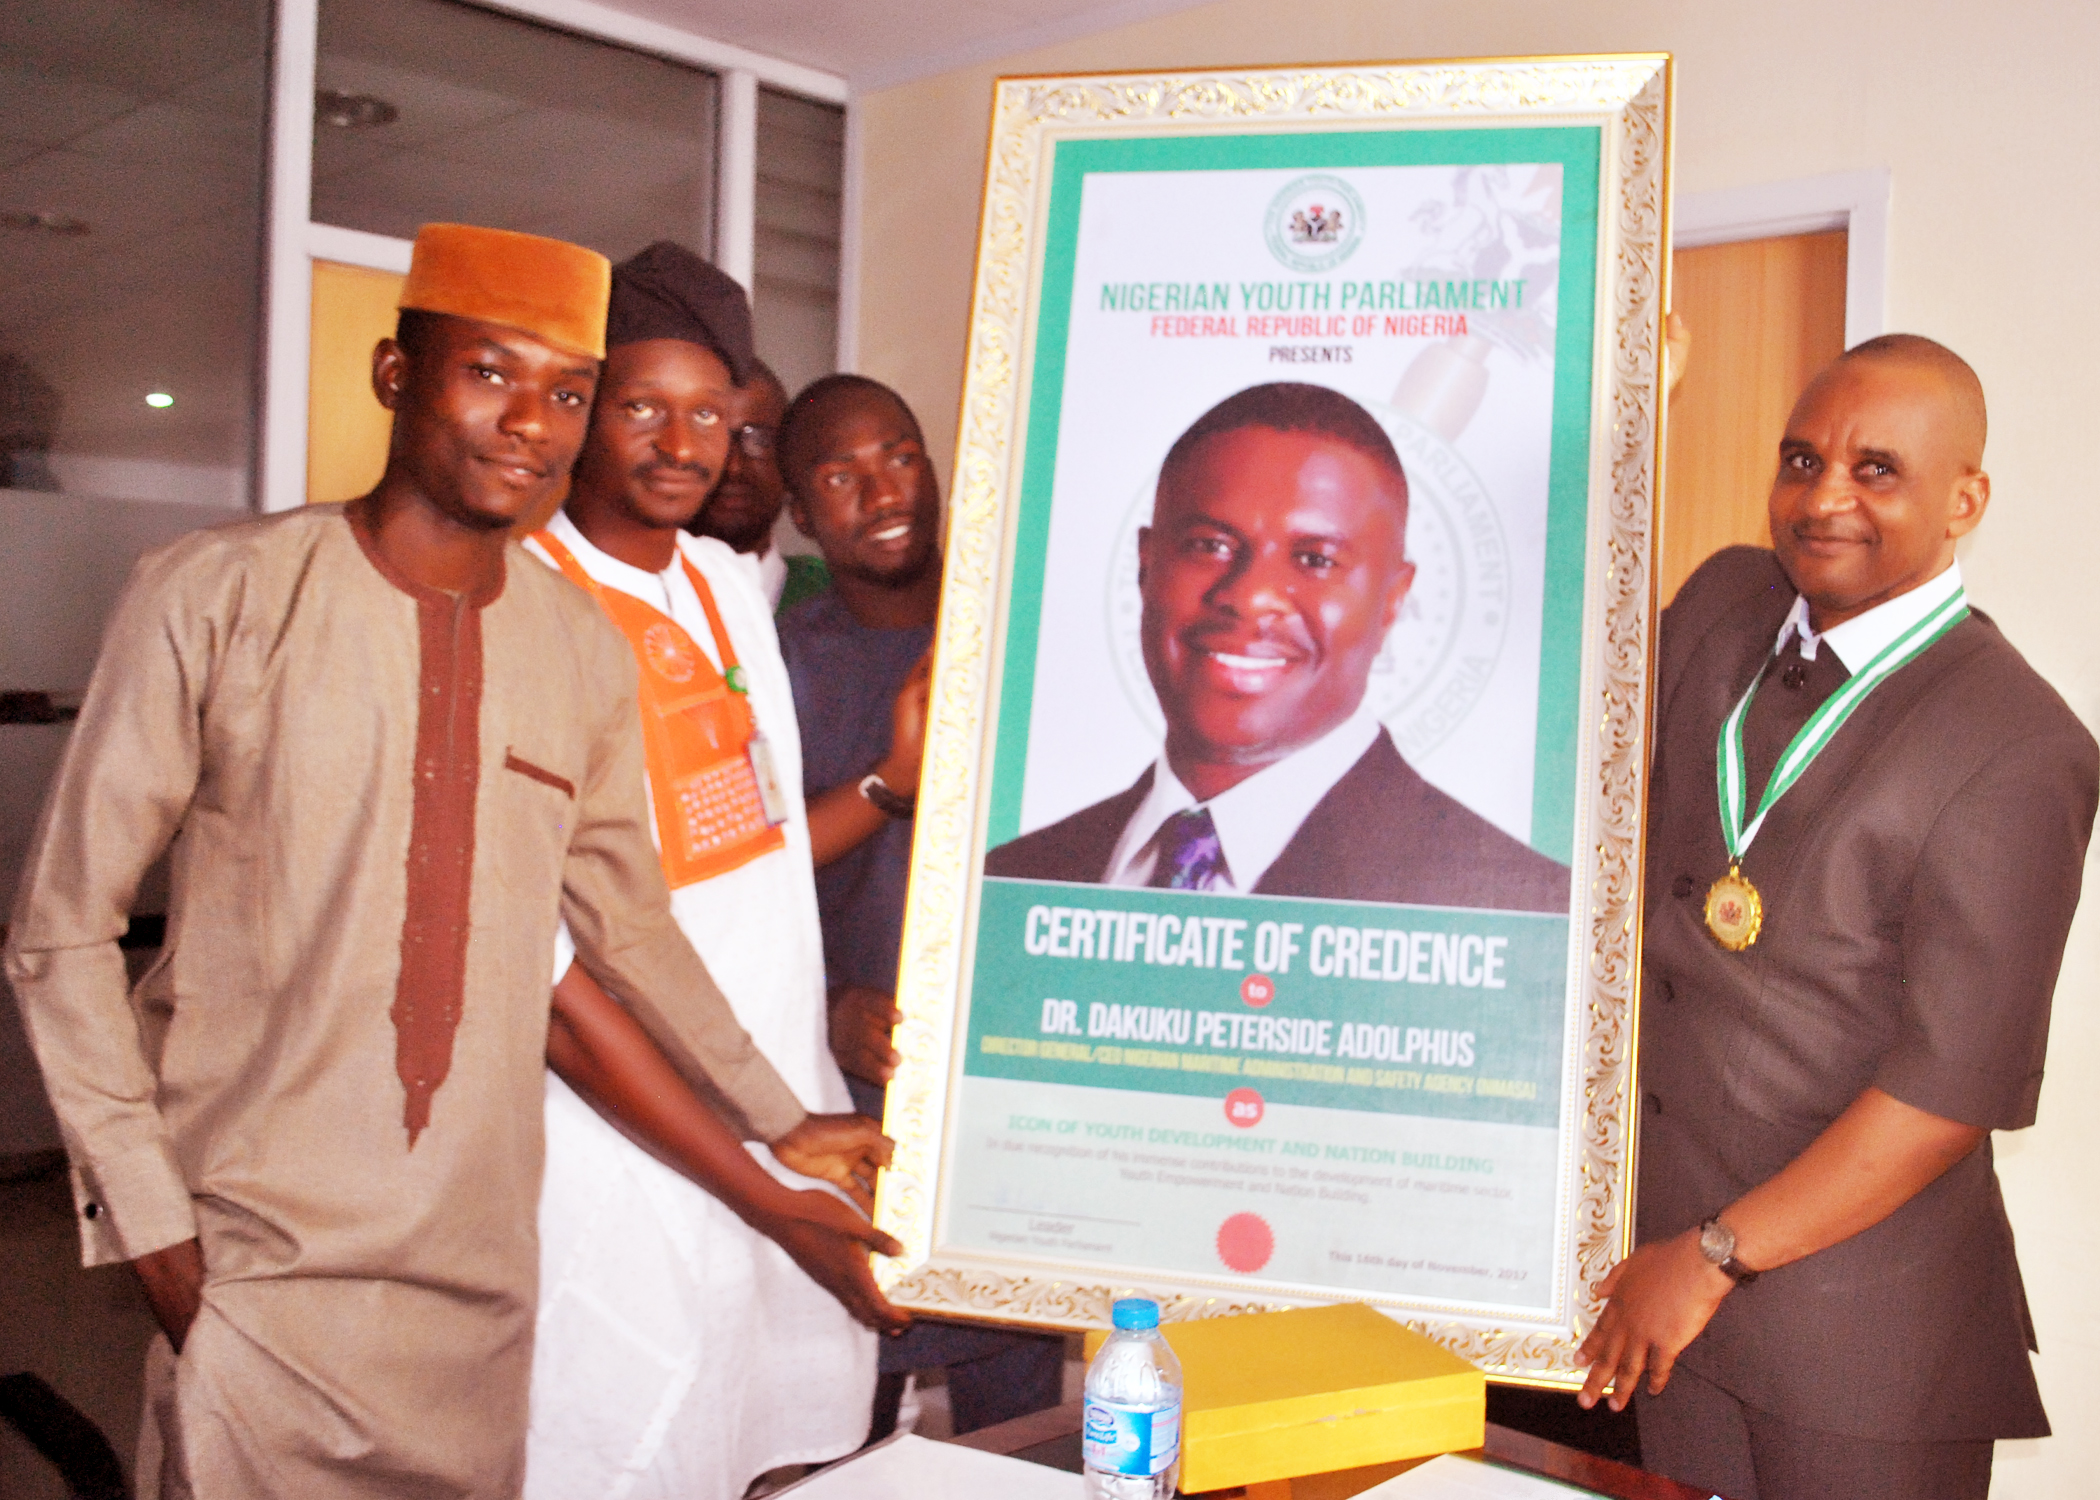 NIMSA DG, Dakuku Peterside gets leadership award